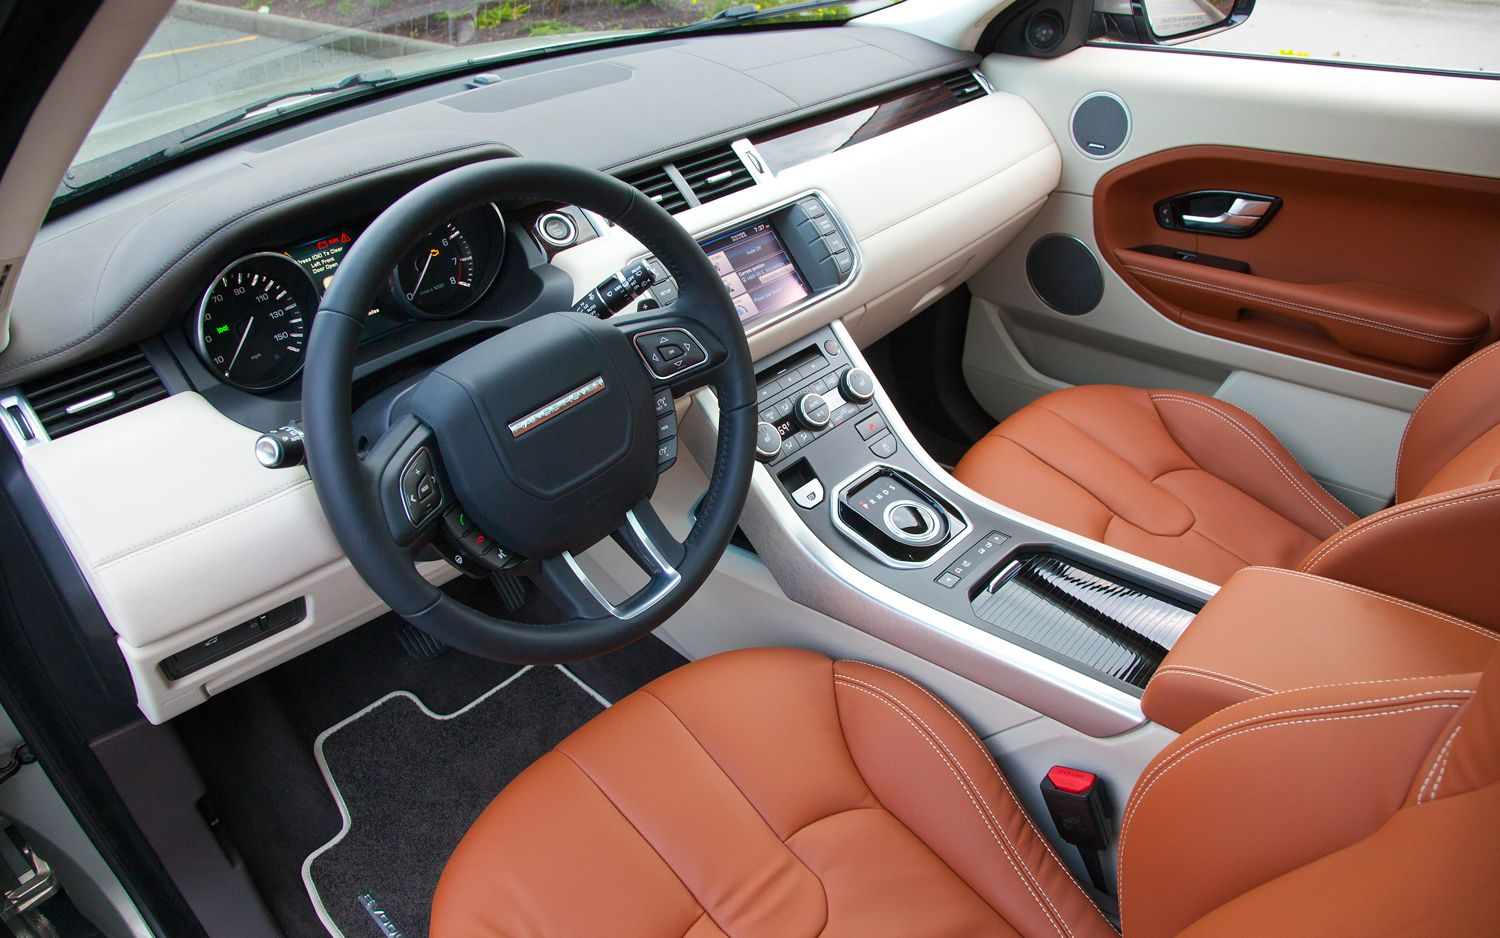 Wards 2012 10 Best Interiors List Includes Four Compact Cars